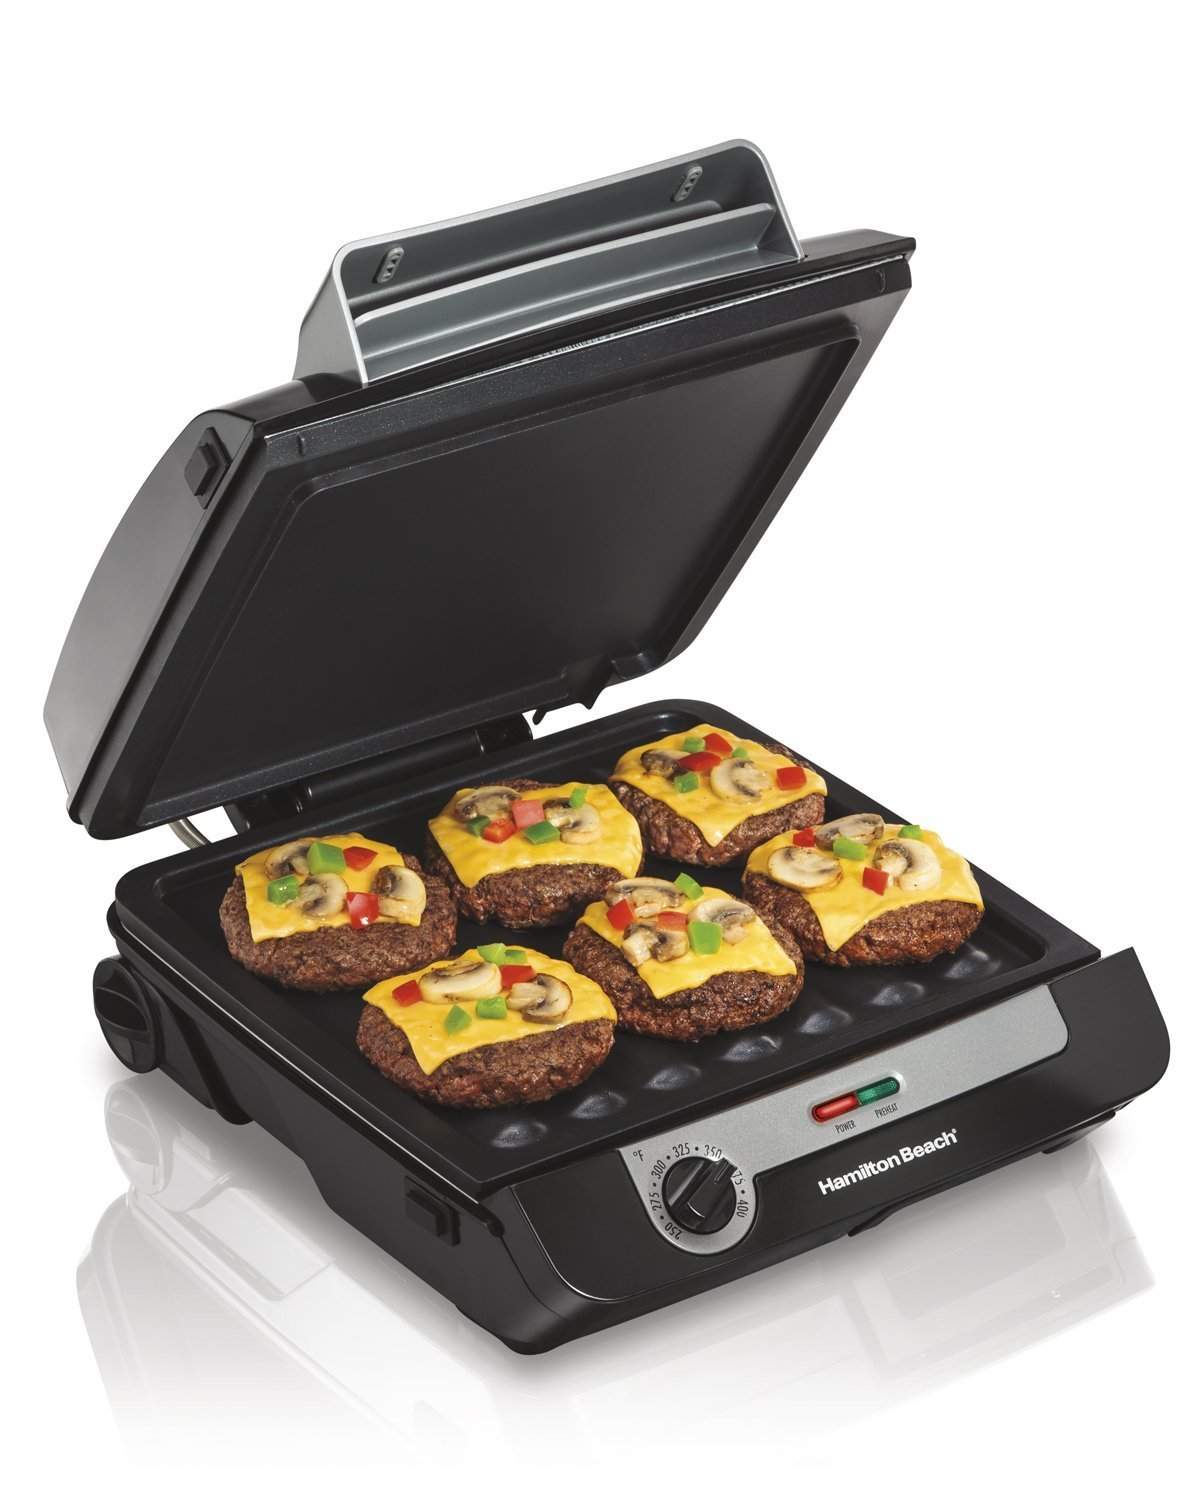 Hamilton Beach 3-in-1 MultiGrill Indoor Grill, Griddle & Bacon Cooker (25600) [並行輸入品]   B01IC194EQ